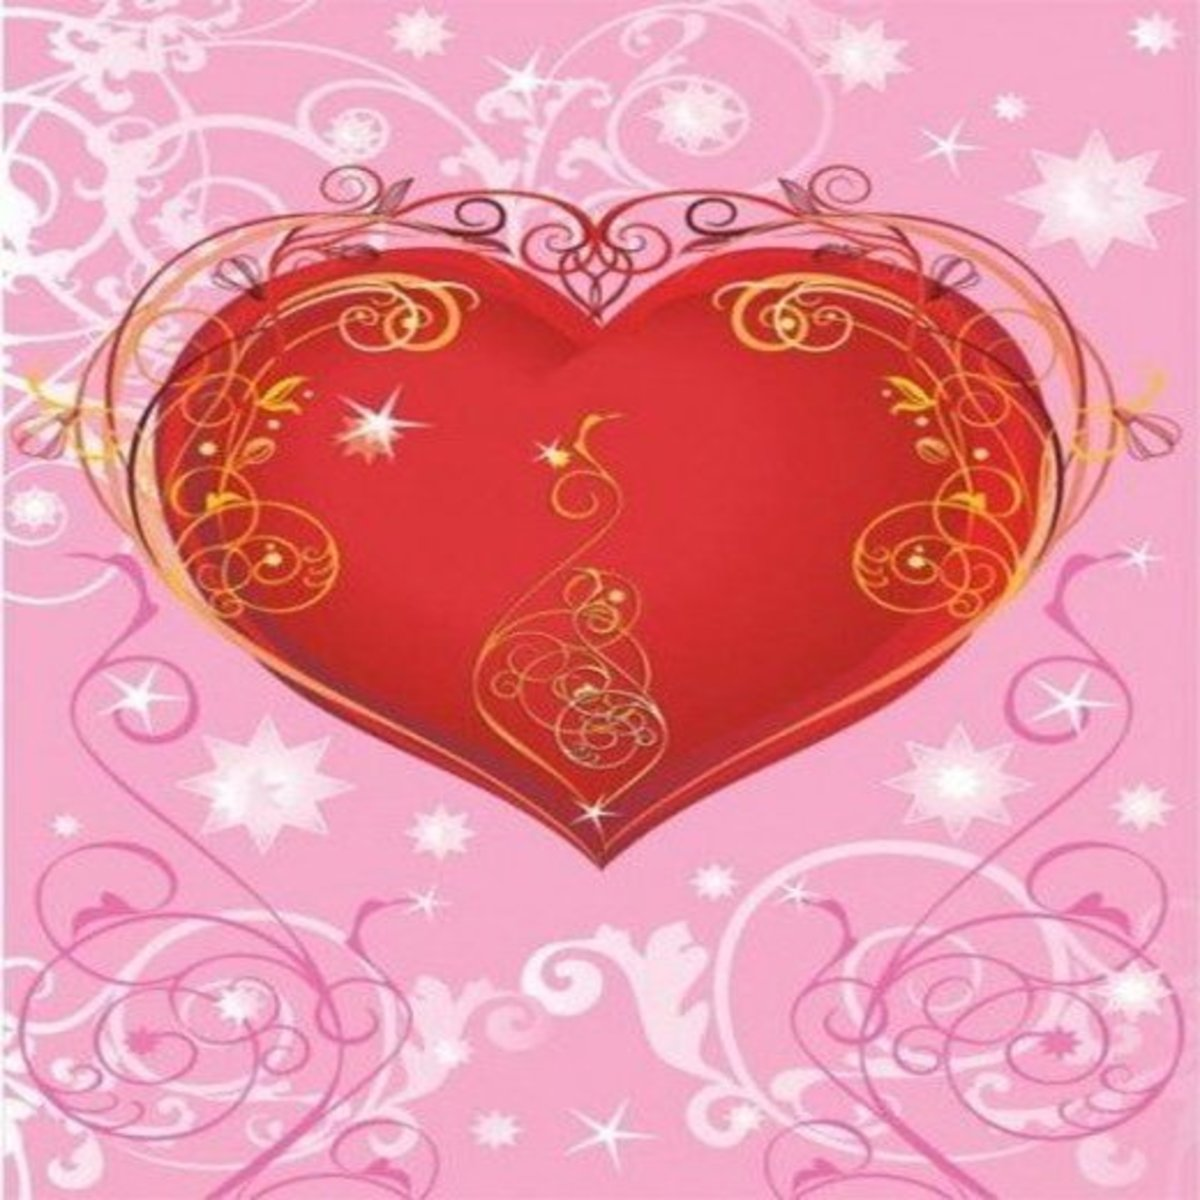 Red Heart Image